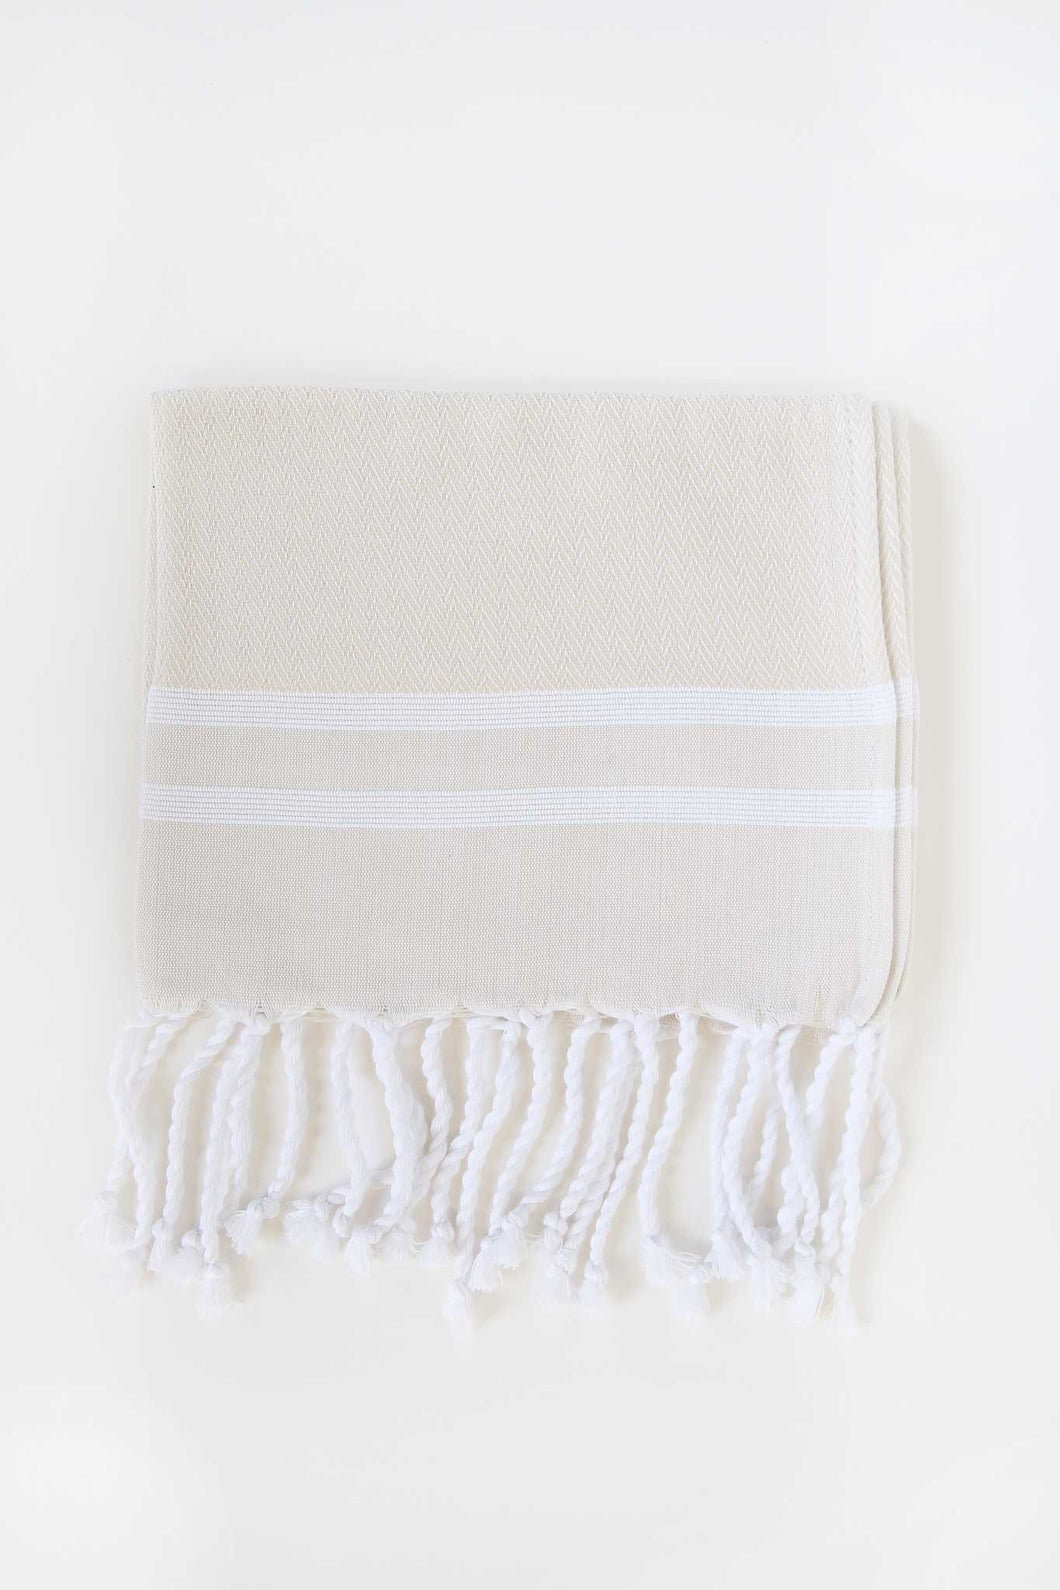 Turkish Guest Towel Herringbone Stripe in Cream